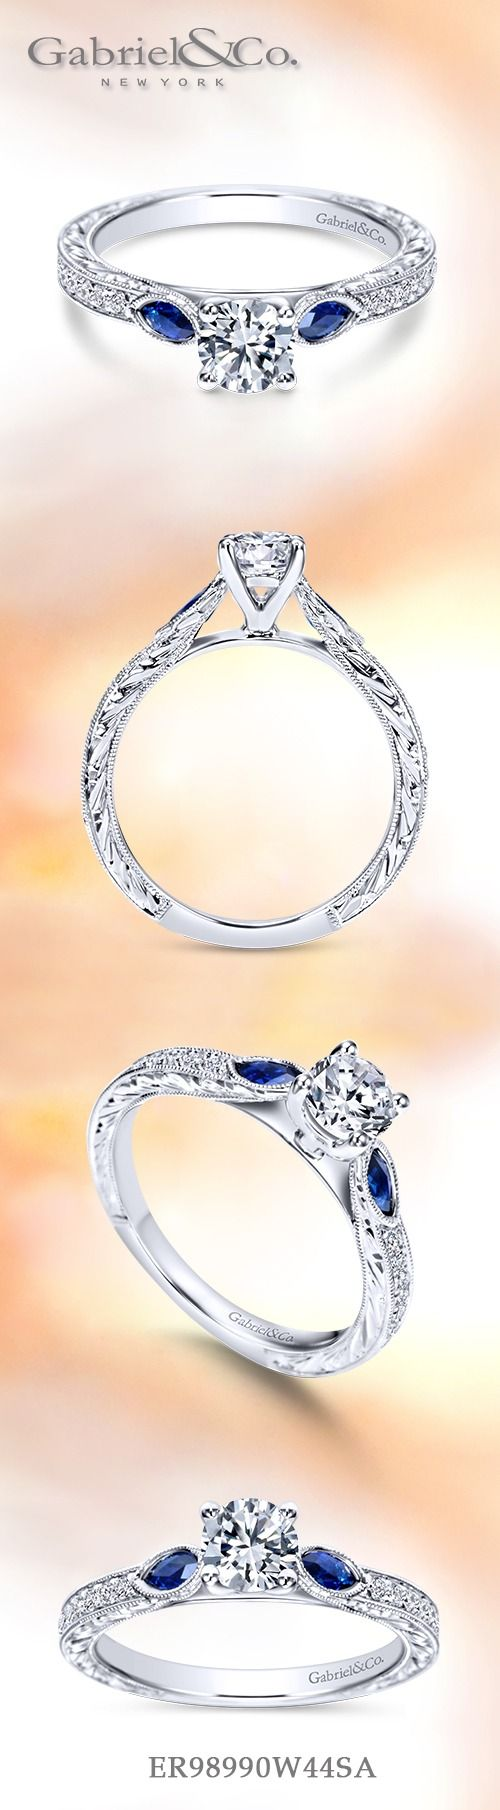 Gabriel NY - Voted #1 Most Preferred Fine Jewelry and Bridal Brand. Vintage 14k White Gold Round 3 Stones  Engagement Ring